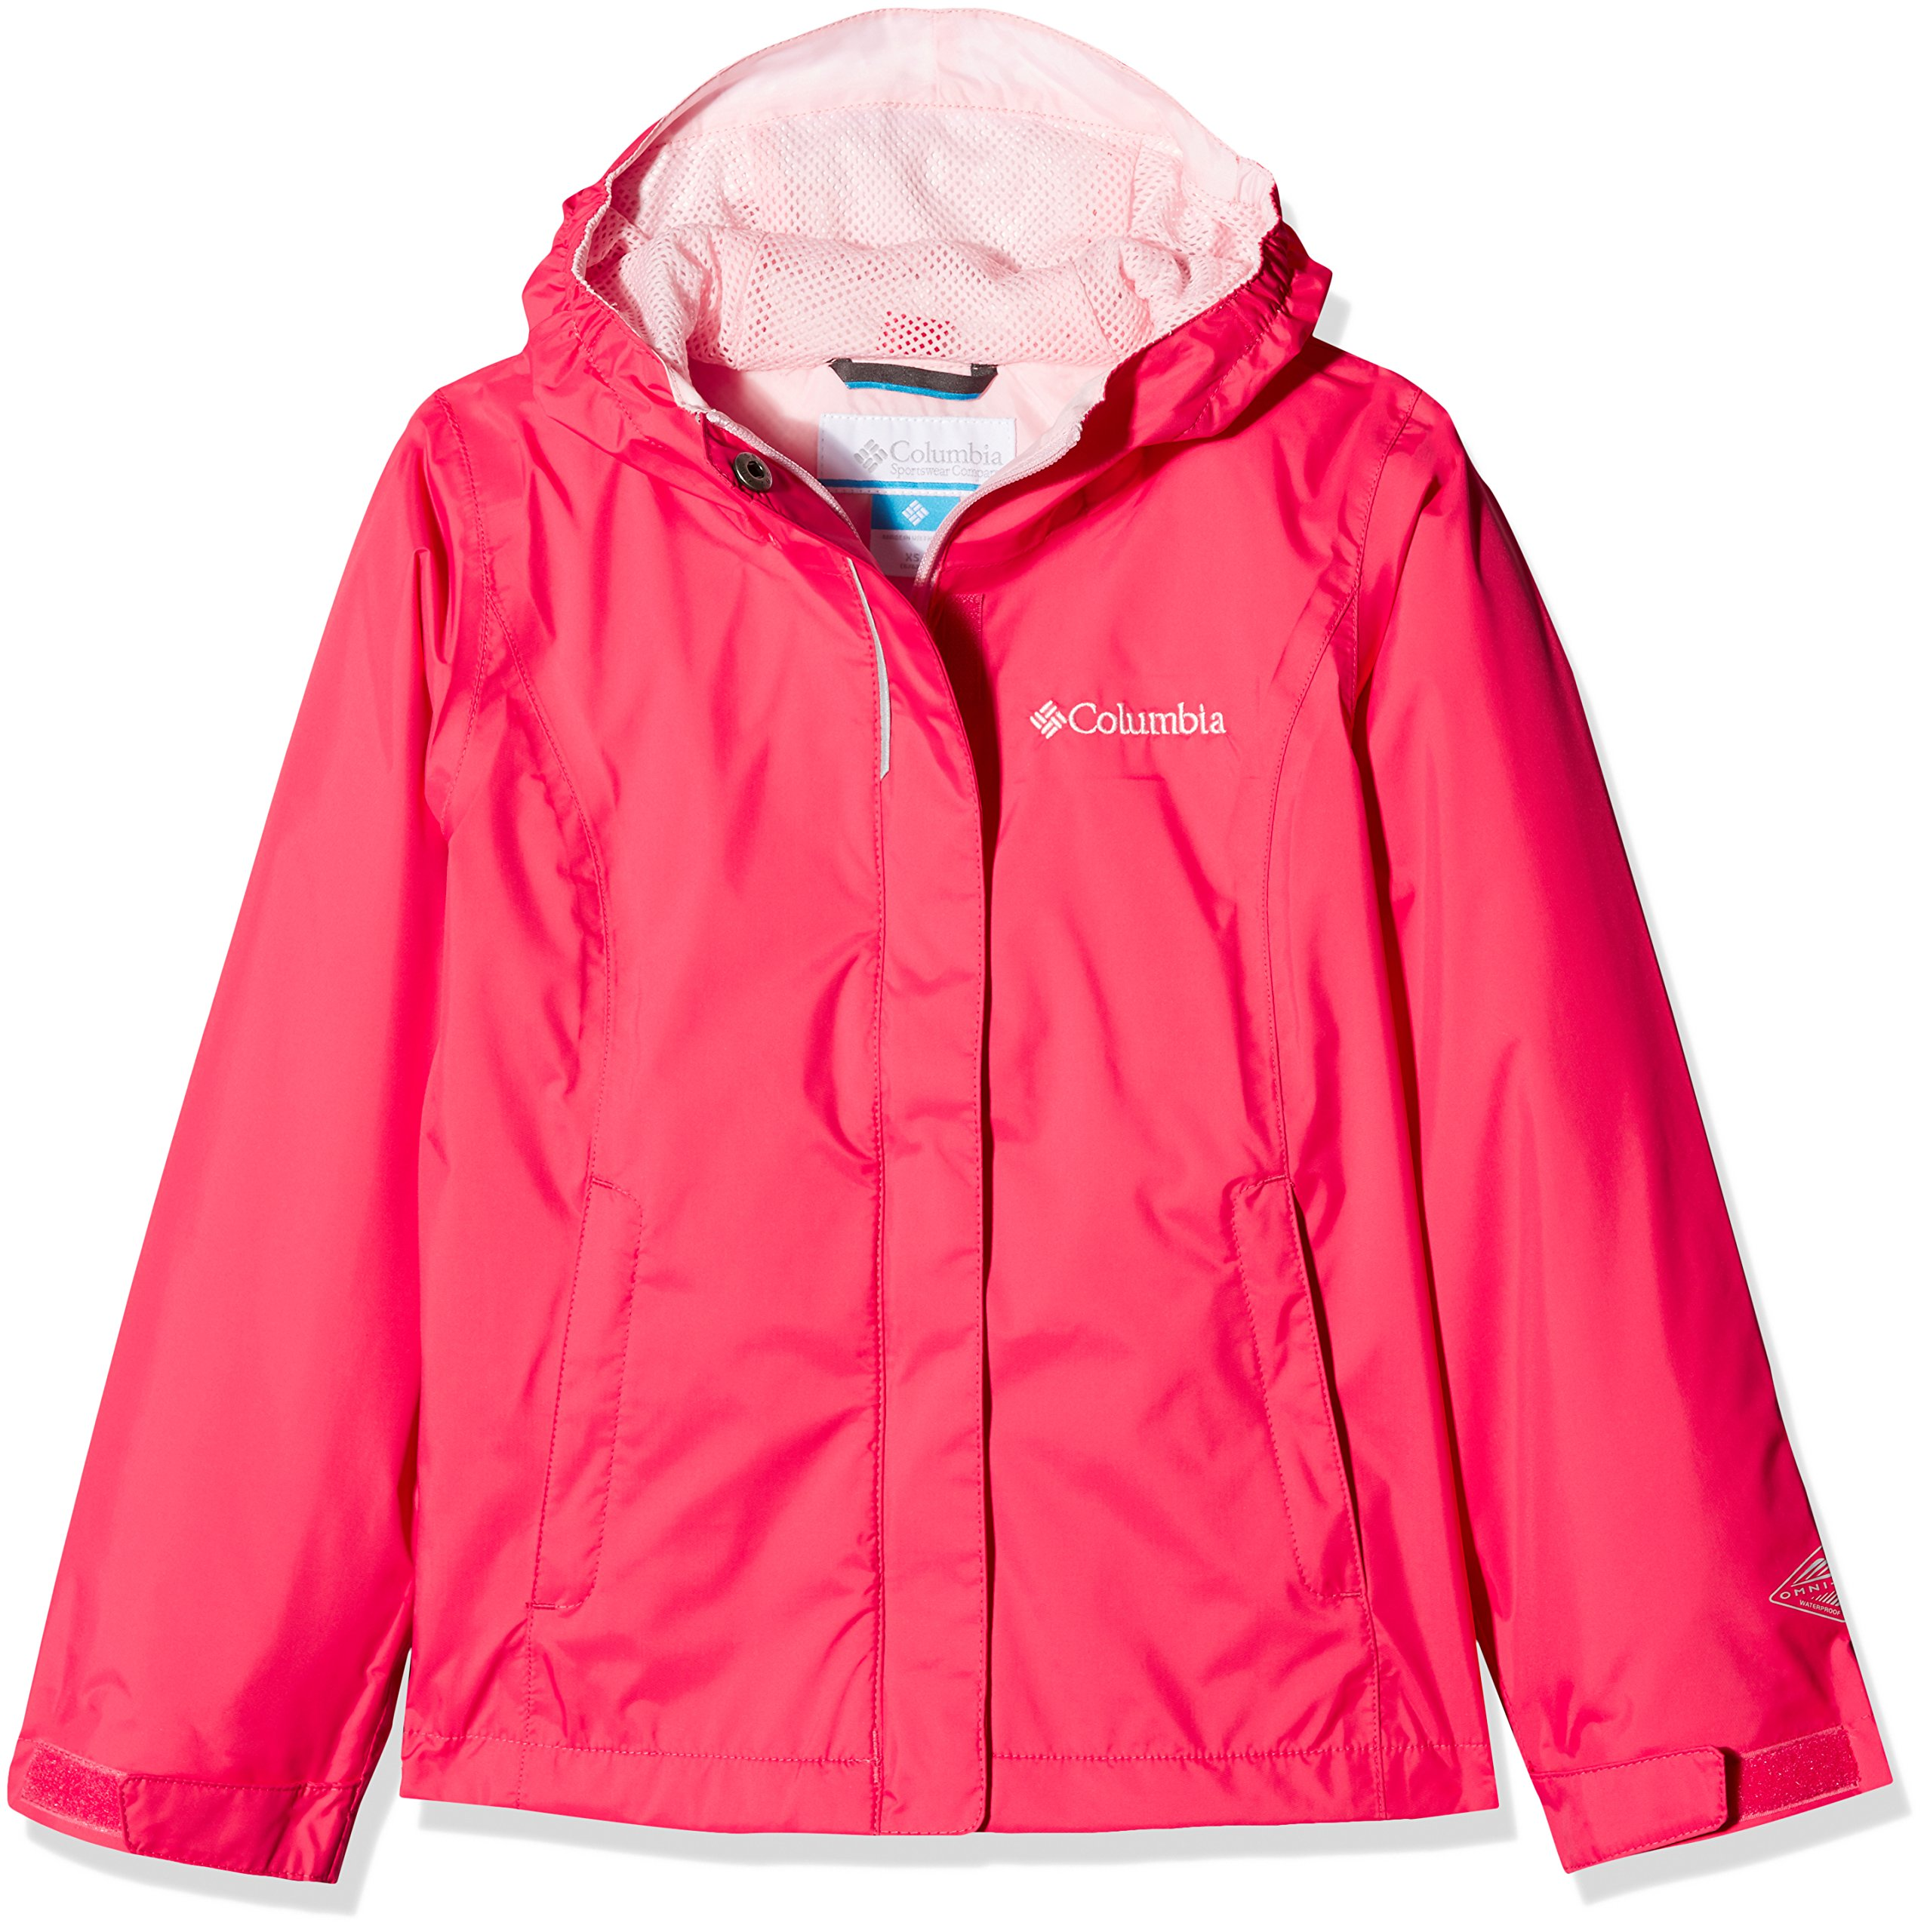 Columbia Little Girls' Arcadia Jacket, Punch Pink, XS